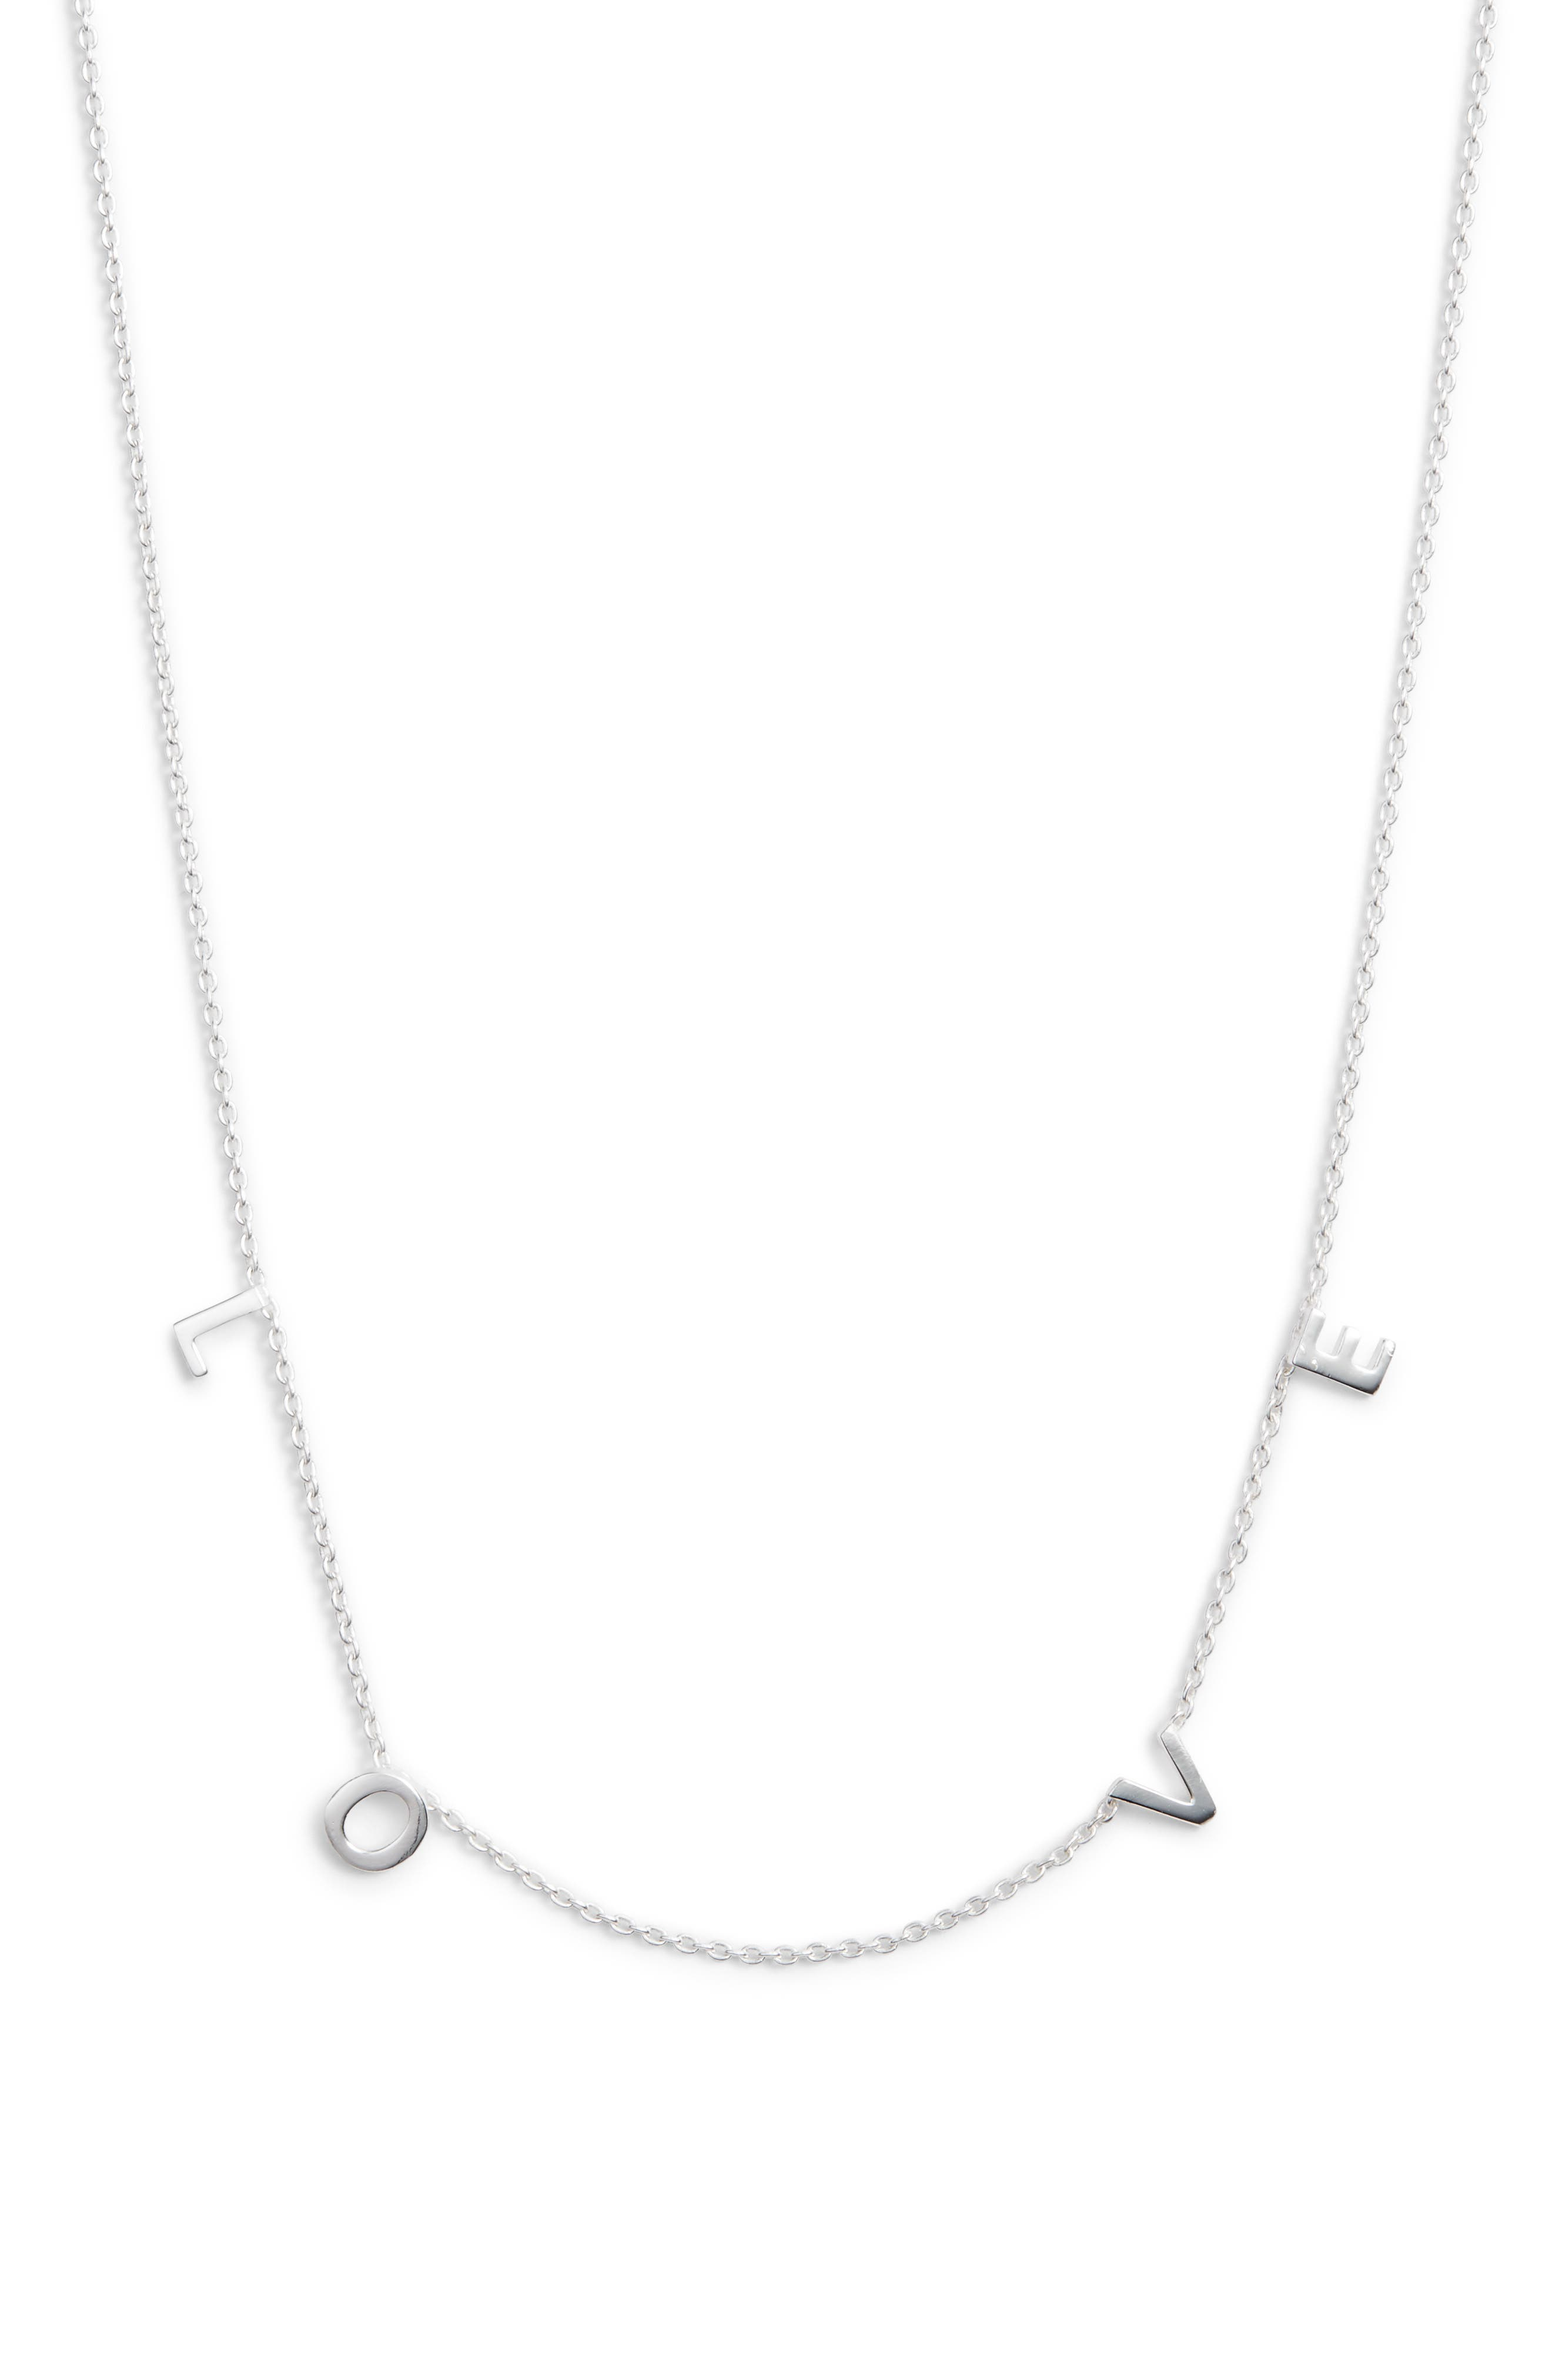 Love Frontal Necklace,                             Main thumbnail 1, color,                             040